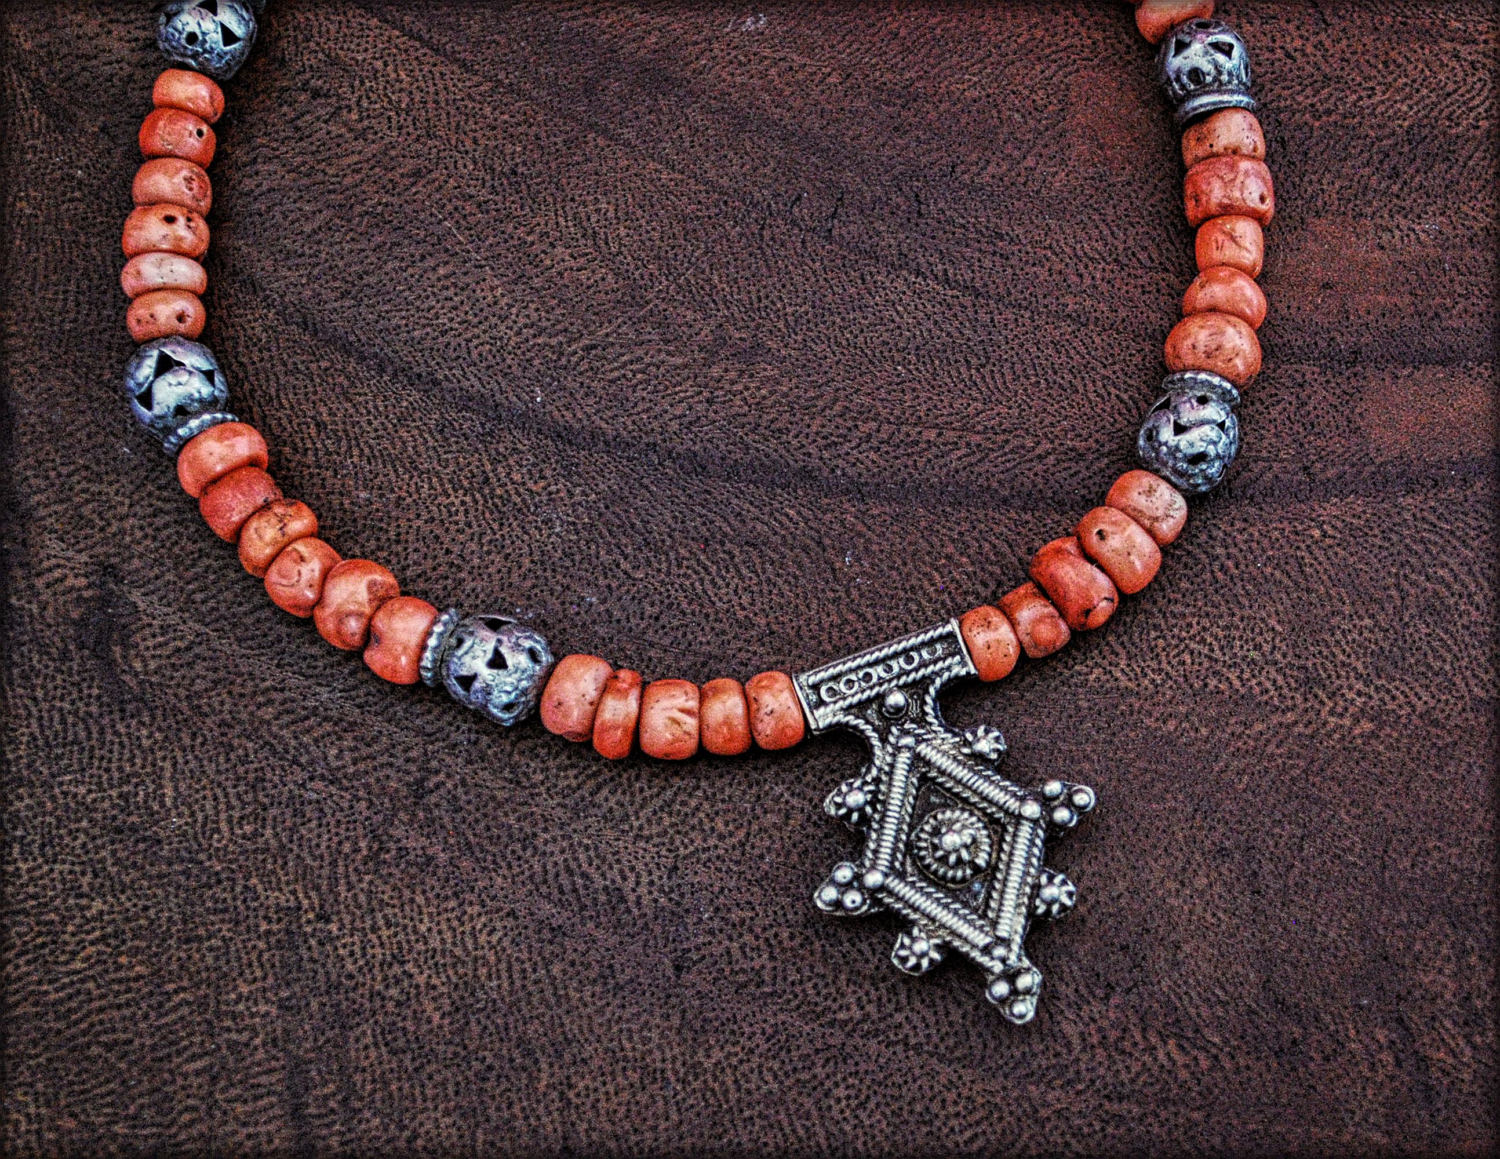 Berber Cross Coral Choker Necklace with Tribal Silver Beads